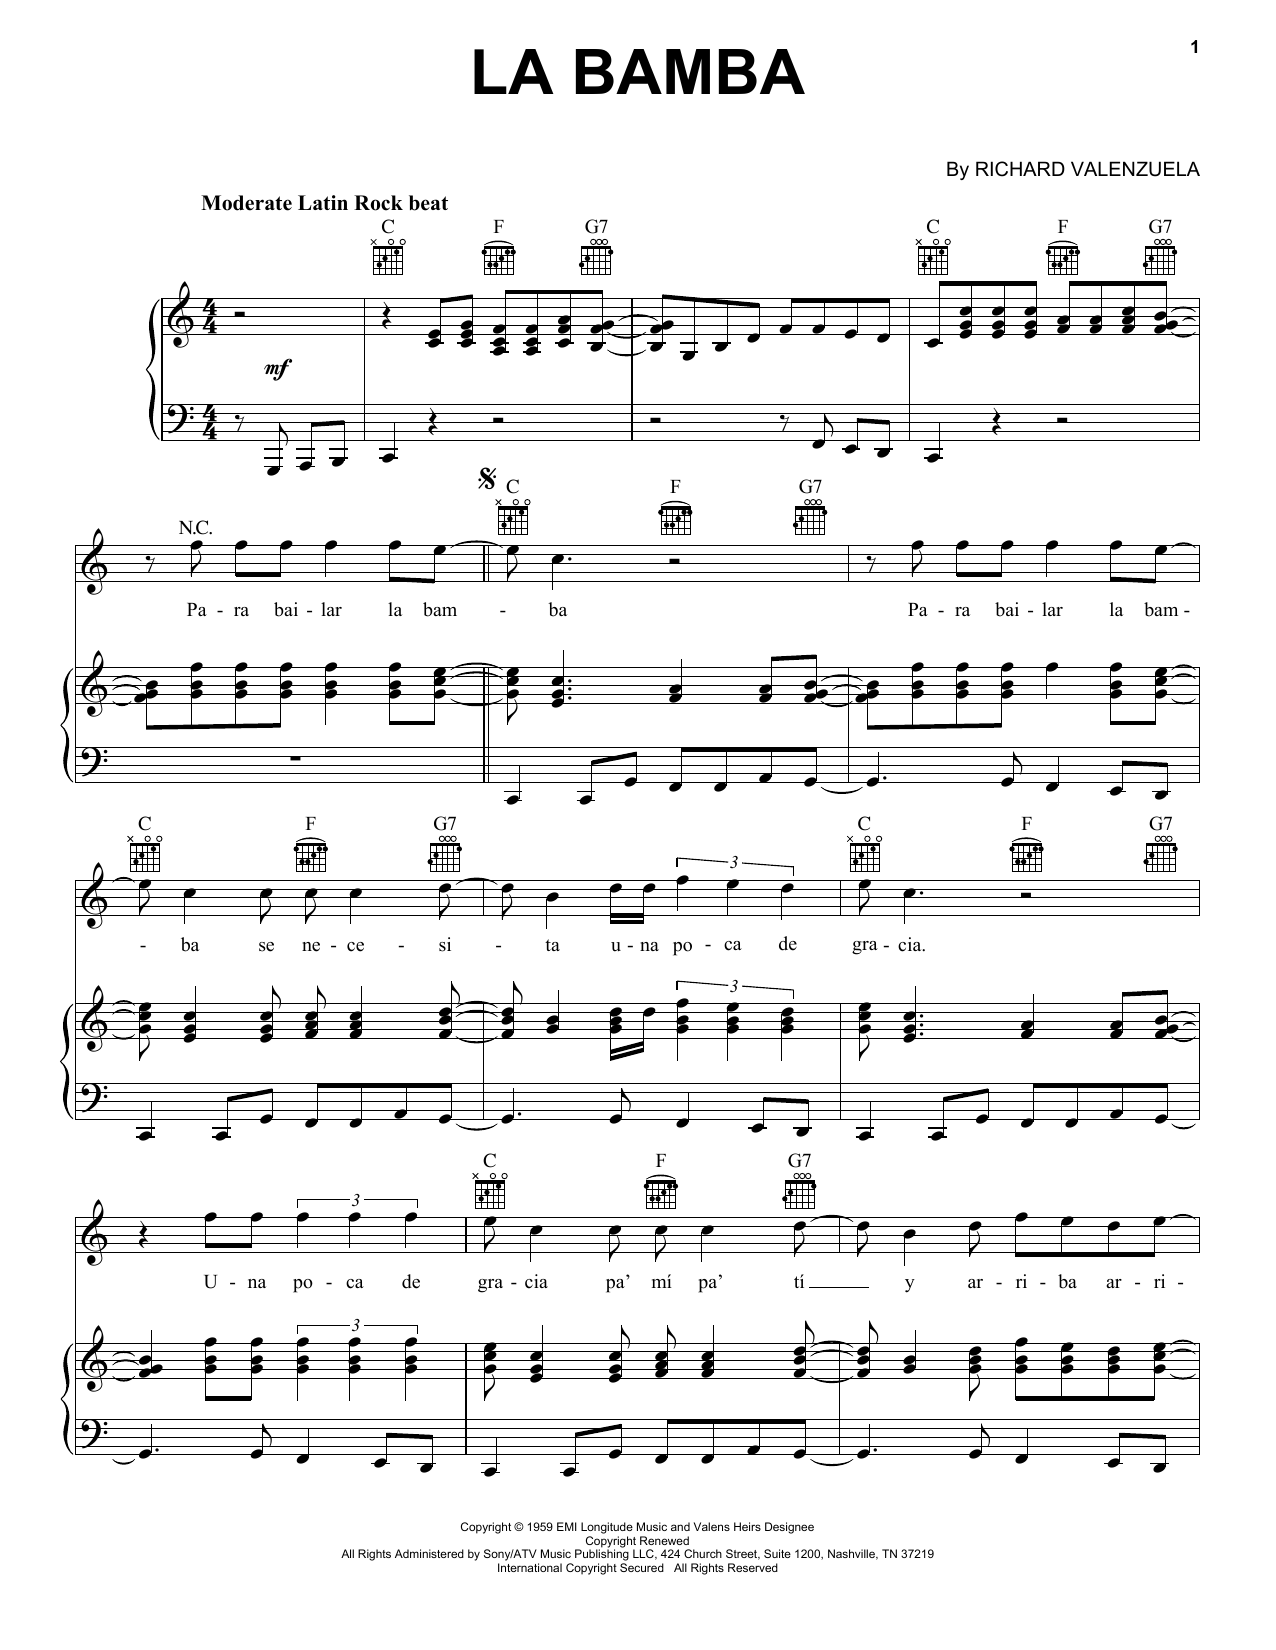 Ritchie Valens La Bamba sheet music preview music notes and score for Piano including 3 page(s)